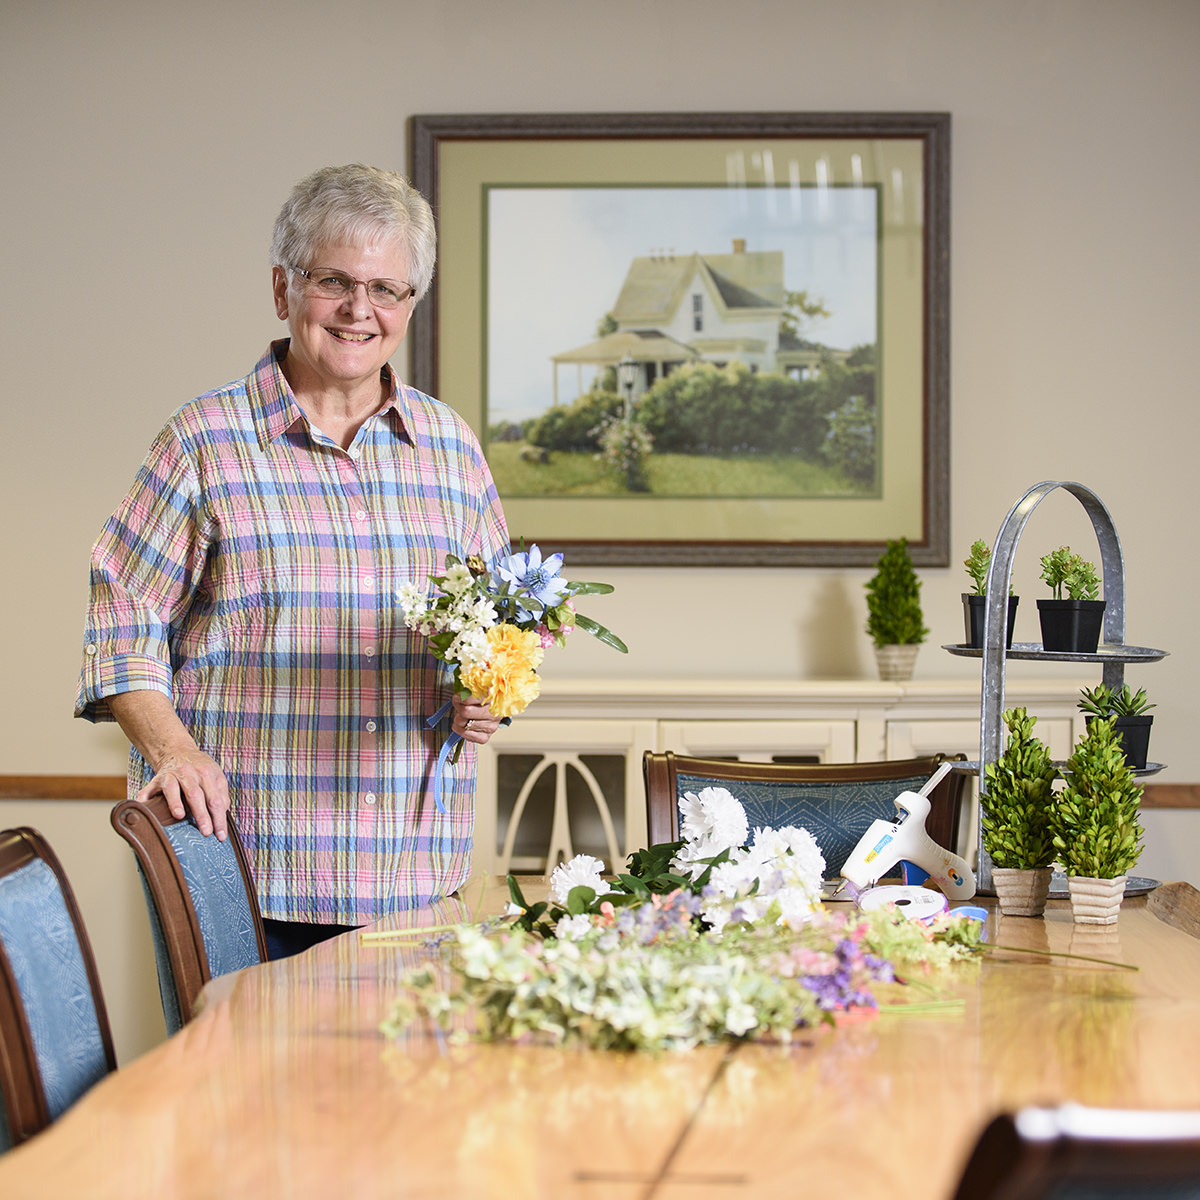 Gladys Kolb appreciates the many opportunities she has to live with purpose at Garden Spot Village, especially the opportunities she has to serve other people.